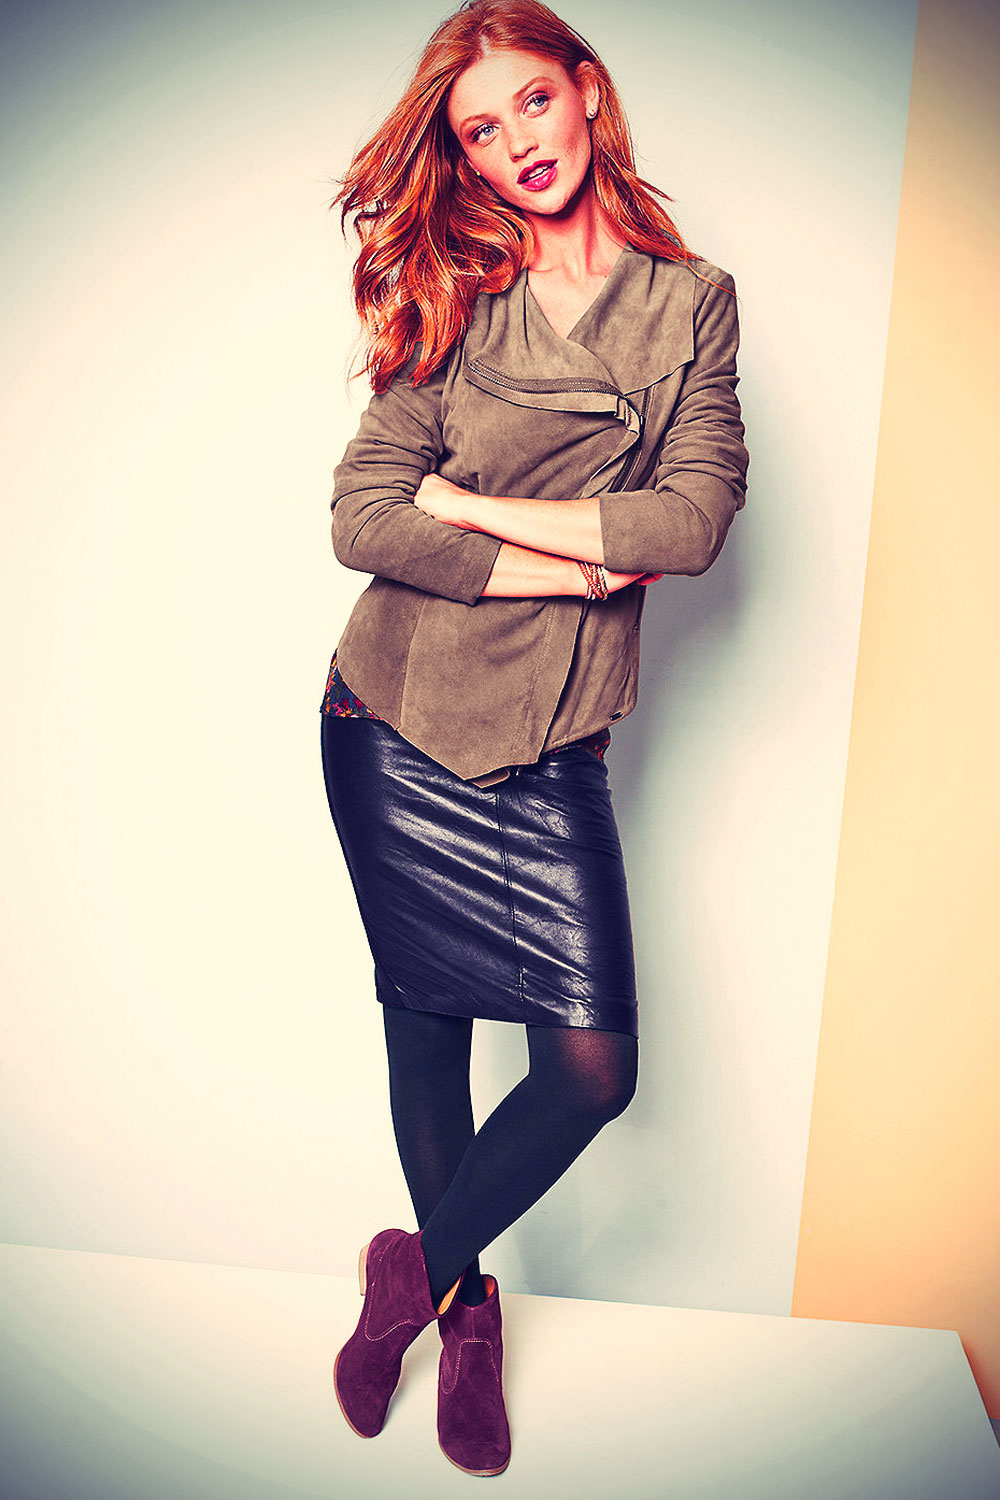 Cintia Dicker at a photoshoot for the 2013 Garnet Hill Collection